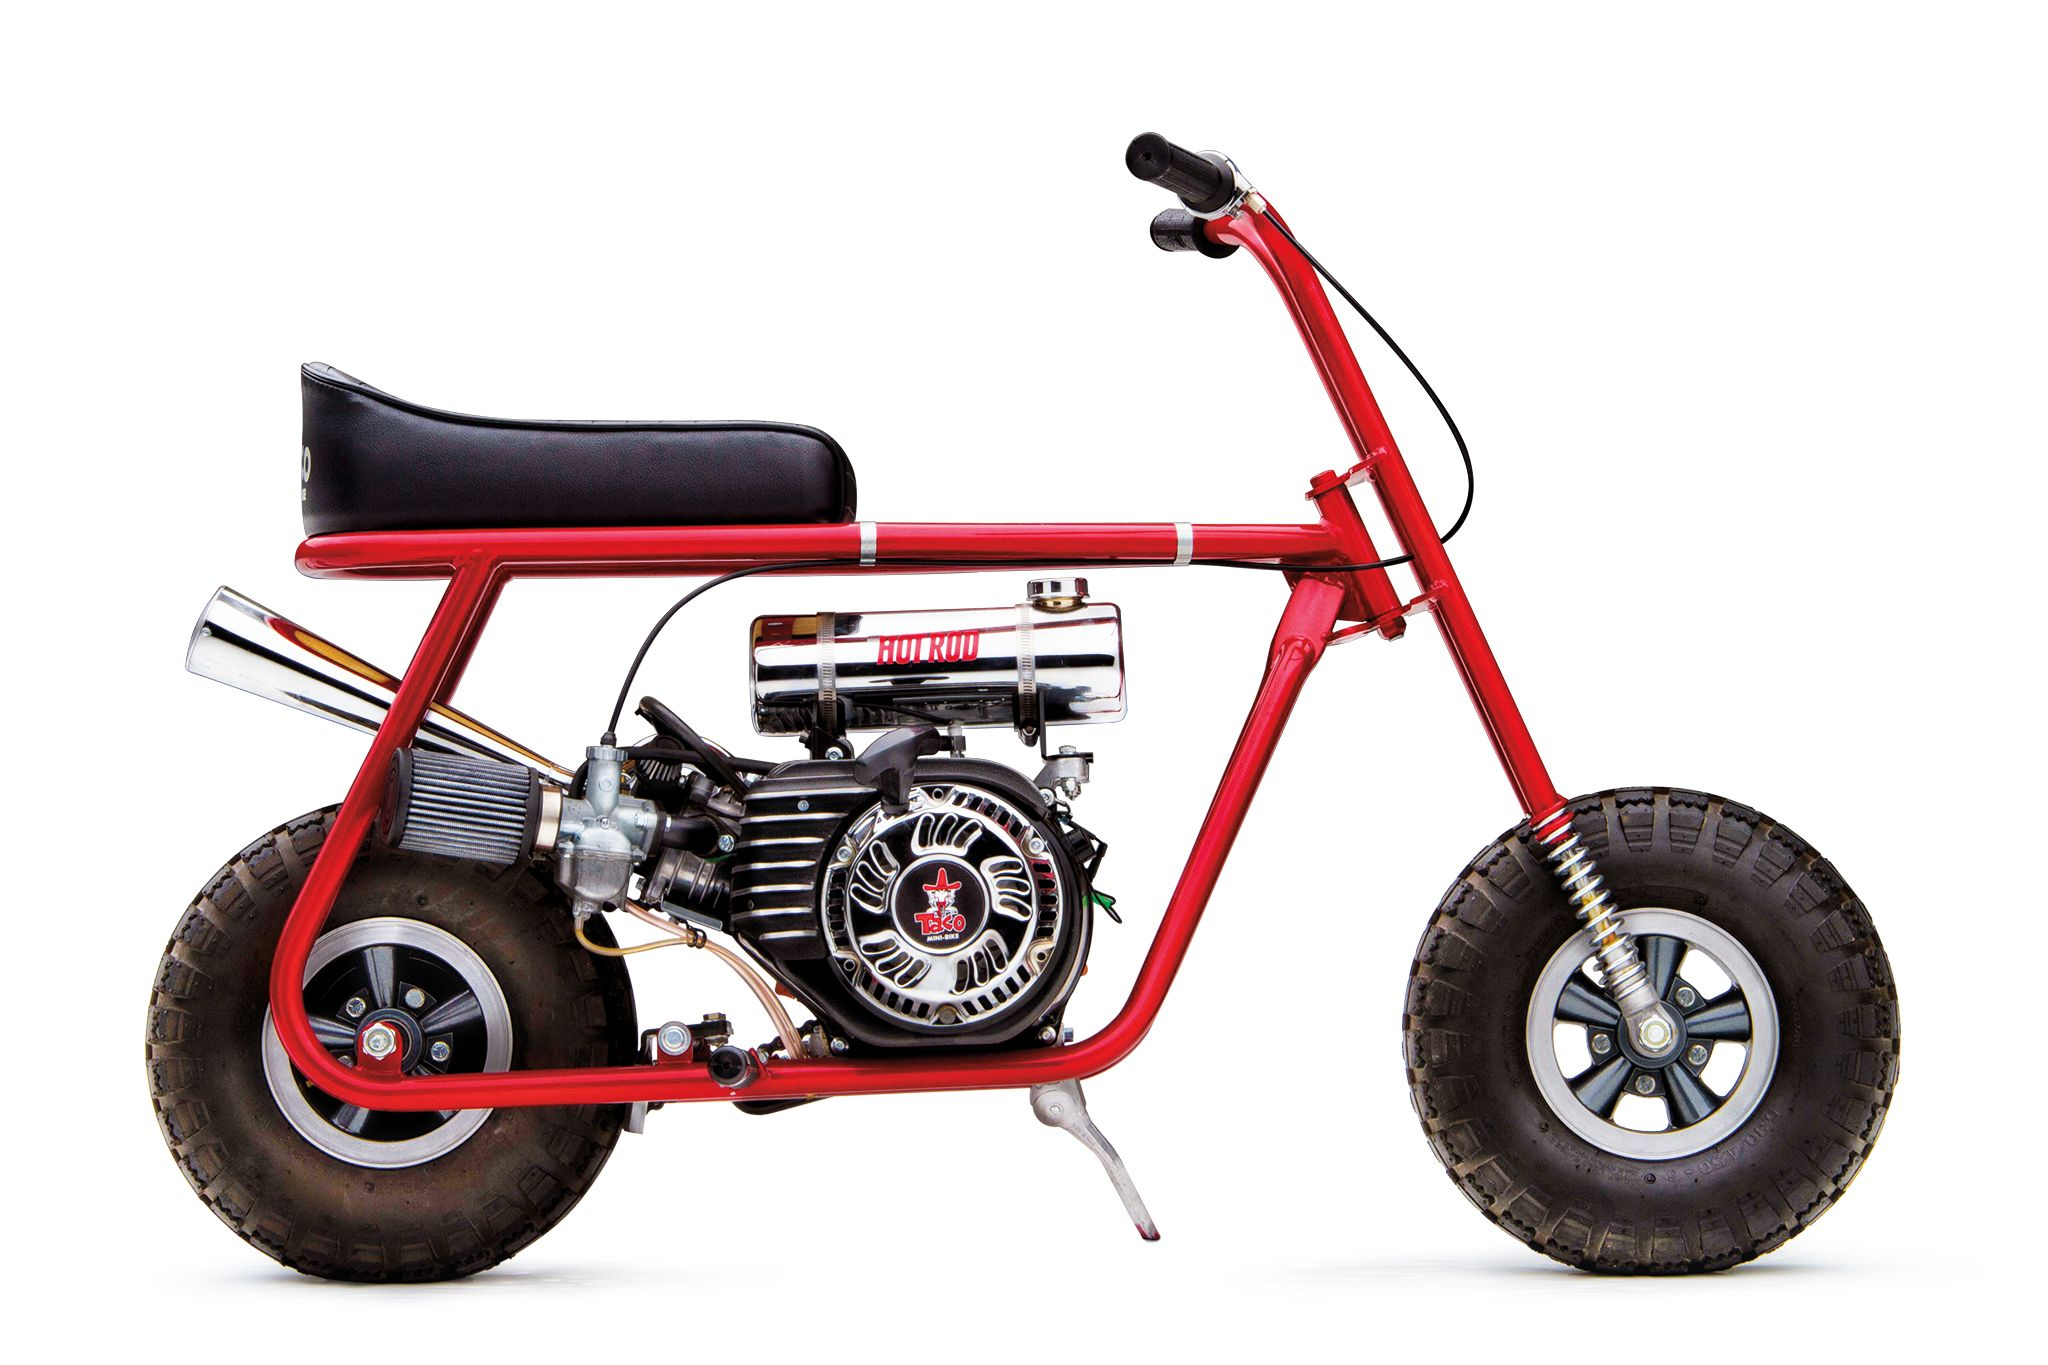 taco mini bikes custom hot rod bike bing images go carts scooters and misc pinterest. Black Bedroom Furniture Sets. Home Design Ideas